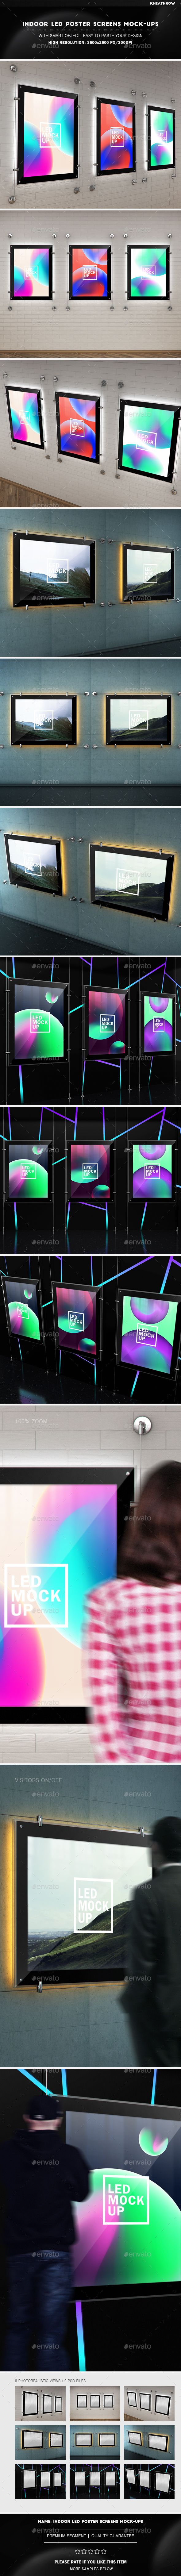 Indoor Led Poster Screens Mock-Ups - Posters Print